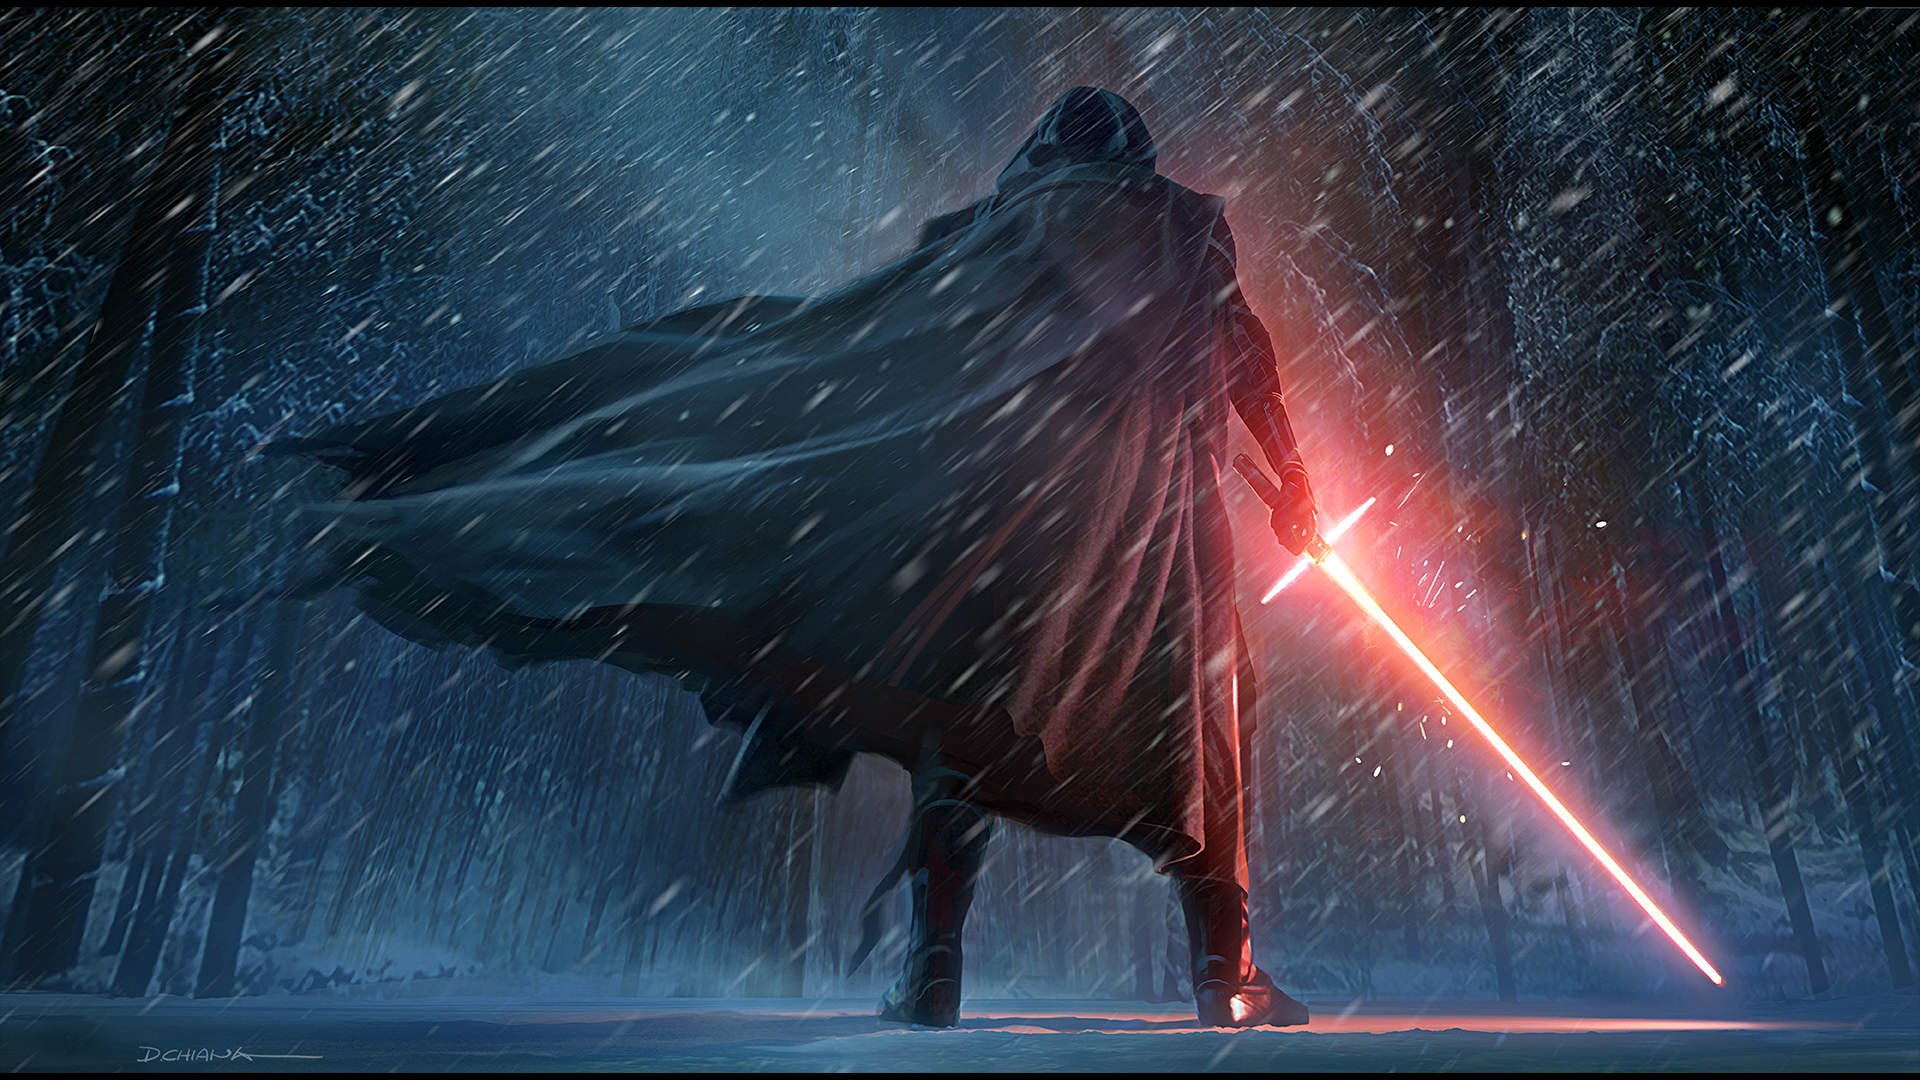 ARTDEPT VD TFA 001 01 Star Wars Creators Reveal Awesome Force Awakens Concept Art